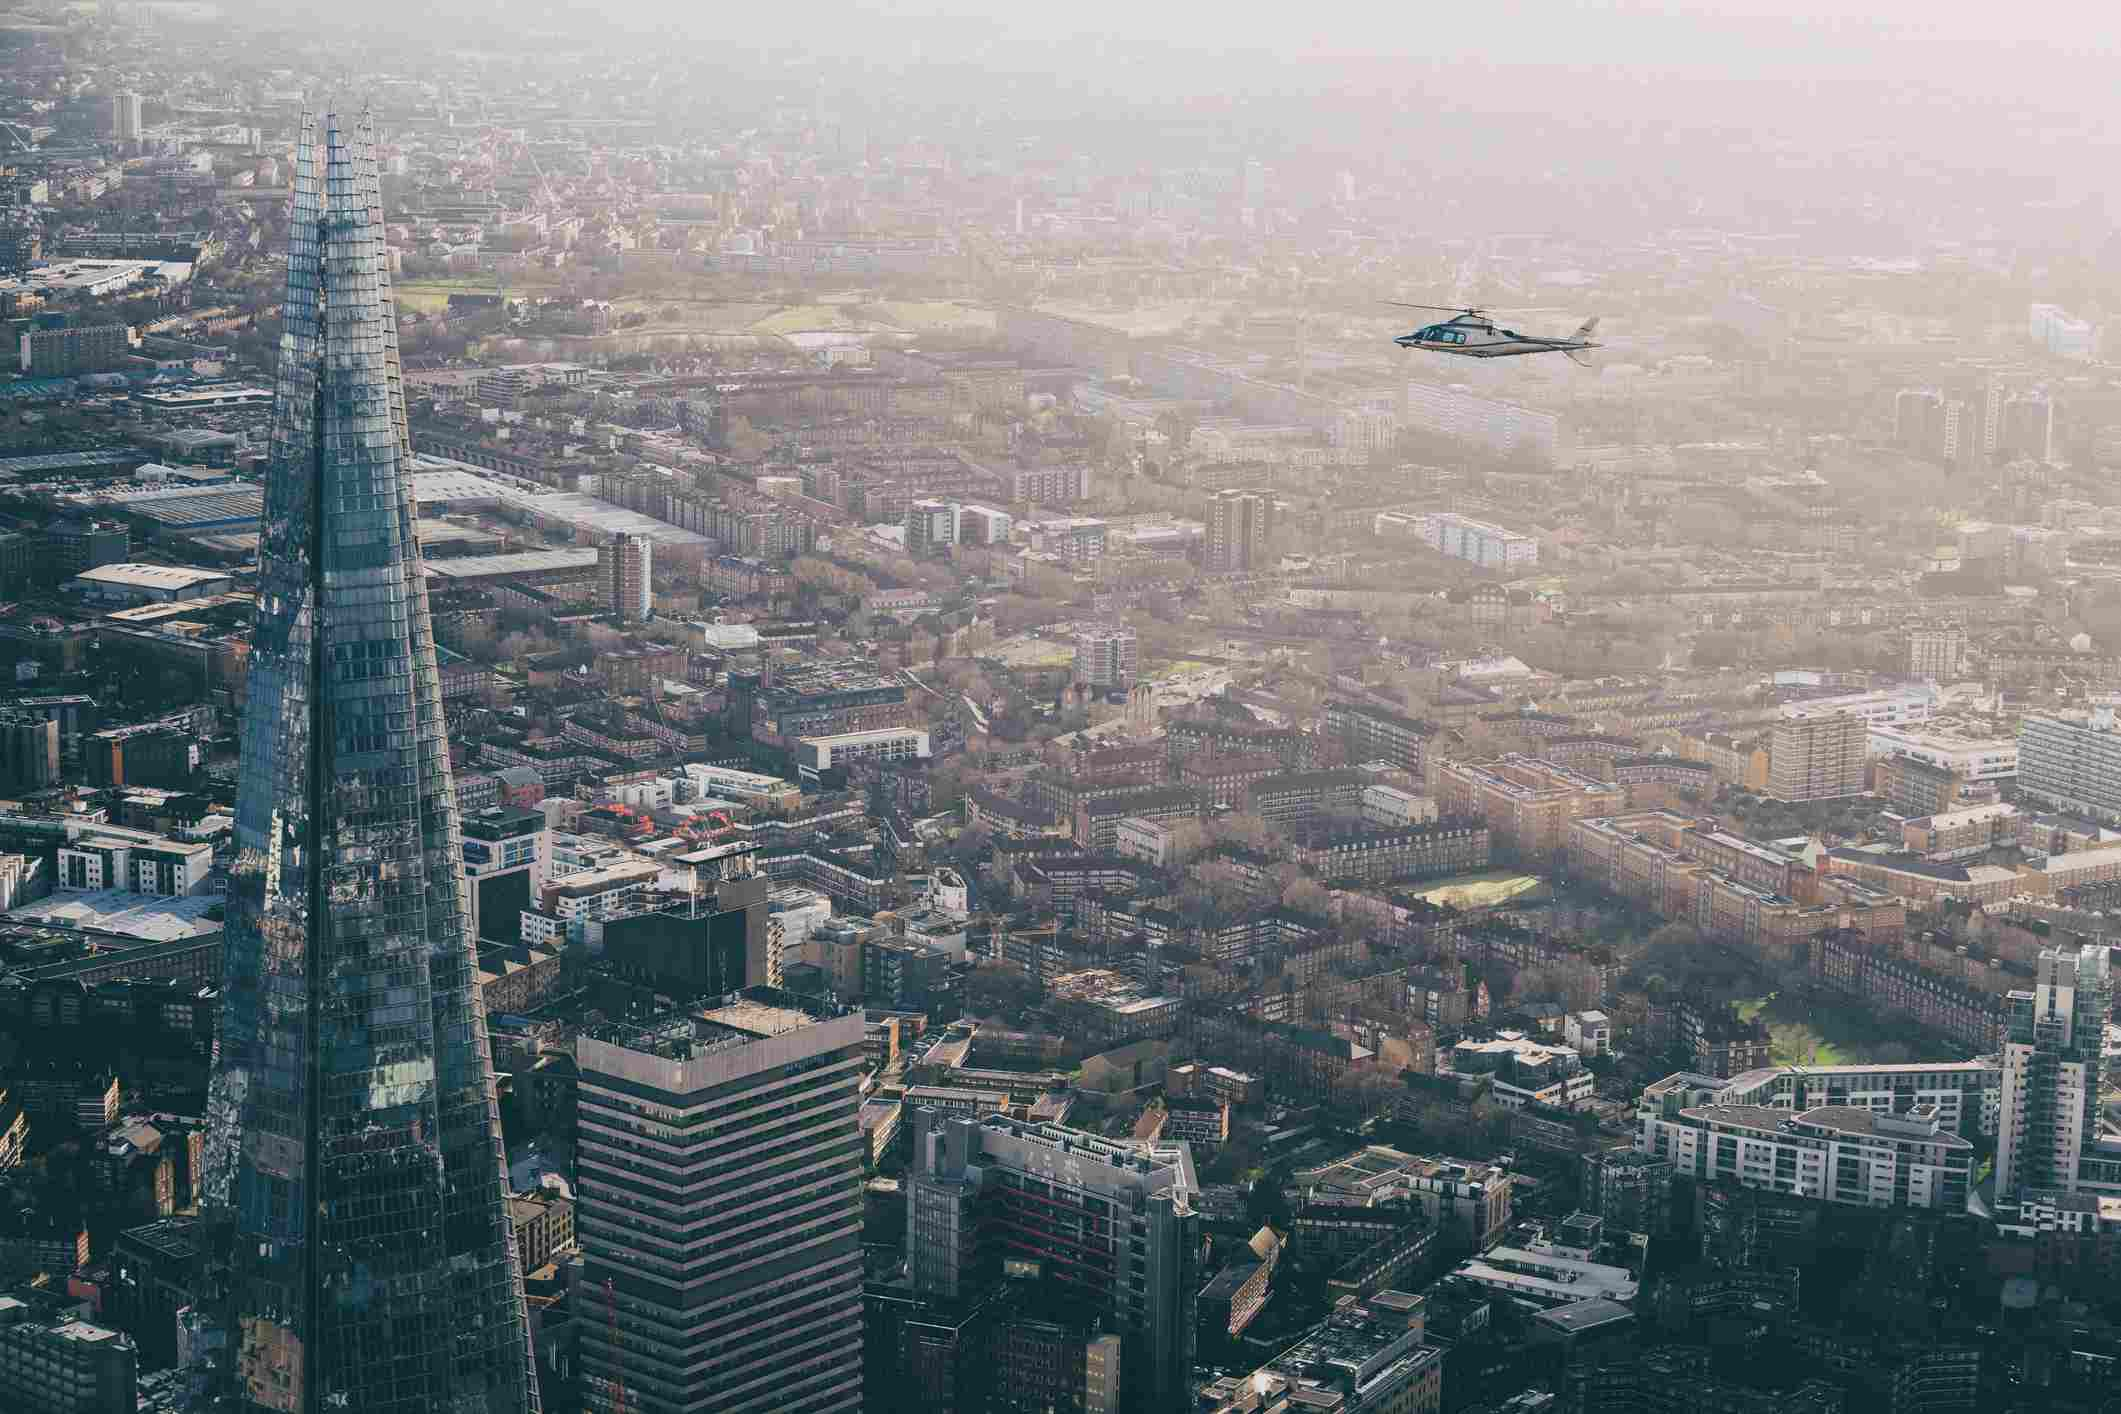 An A-109 helicopter dwarfed by the impressively large building that is The Shard in London.